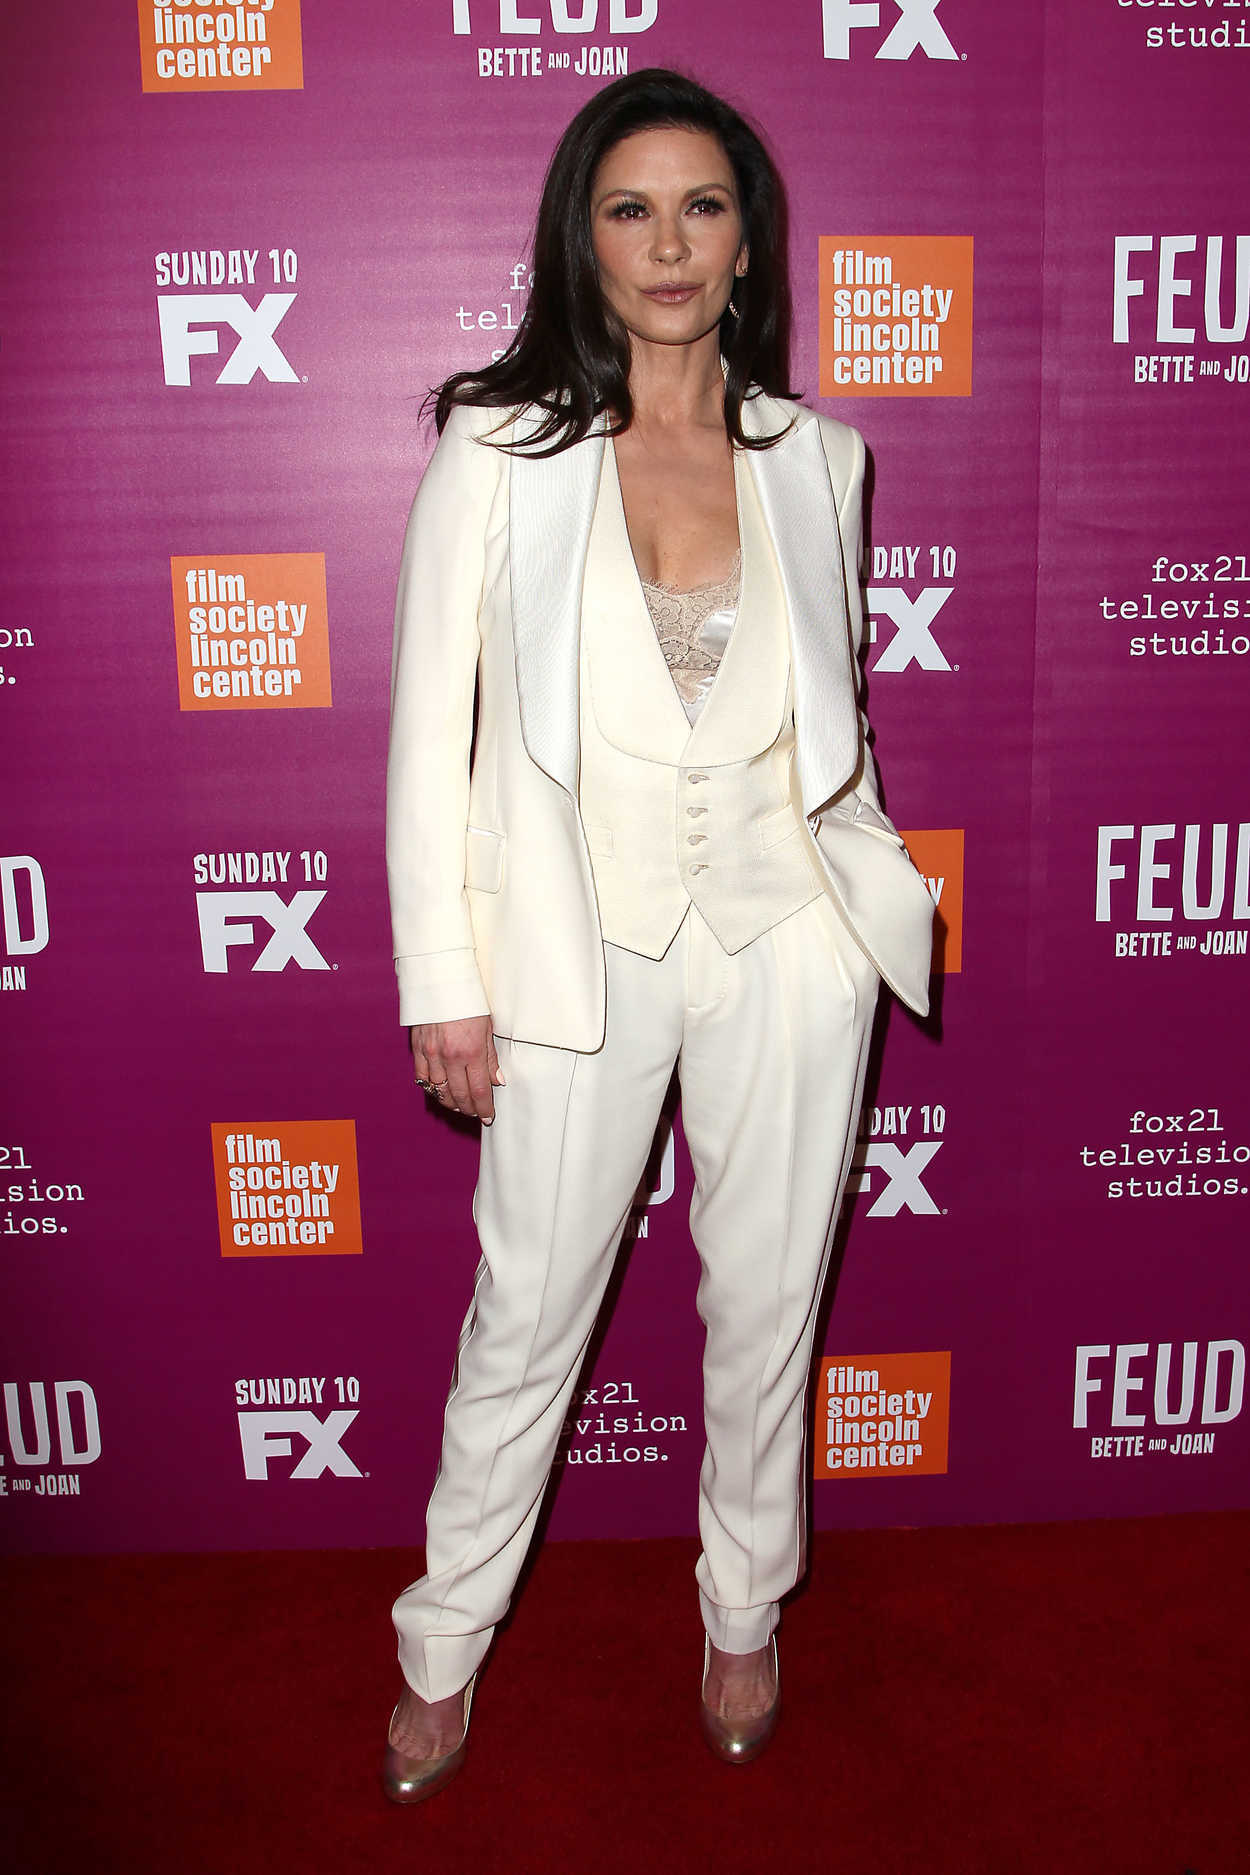 Catherine Zeta-Jones Arrives at the Feud Premiere in New ... Anne Hathaway Feud